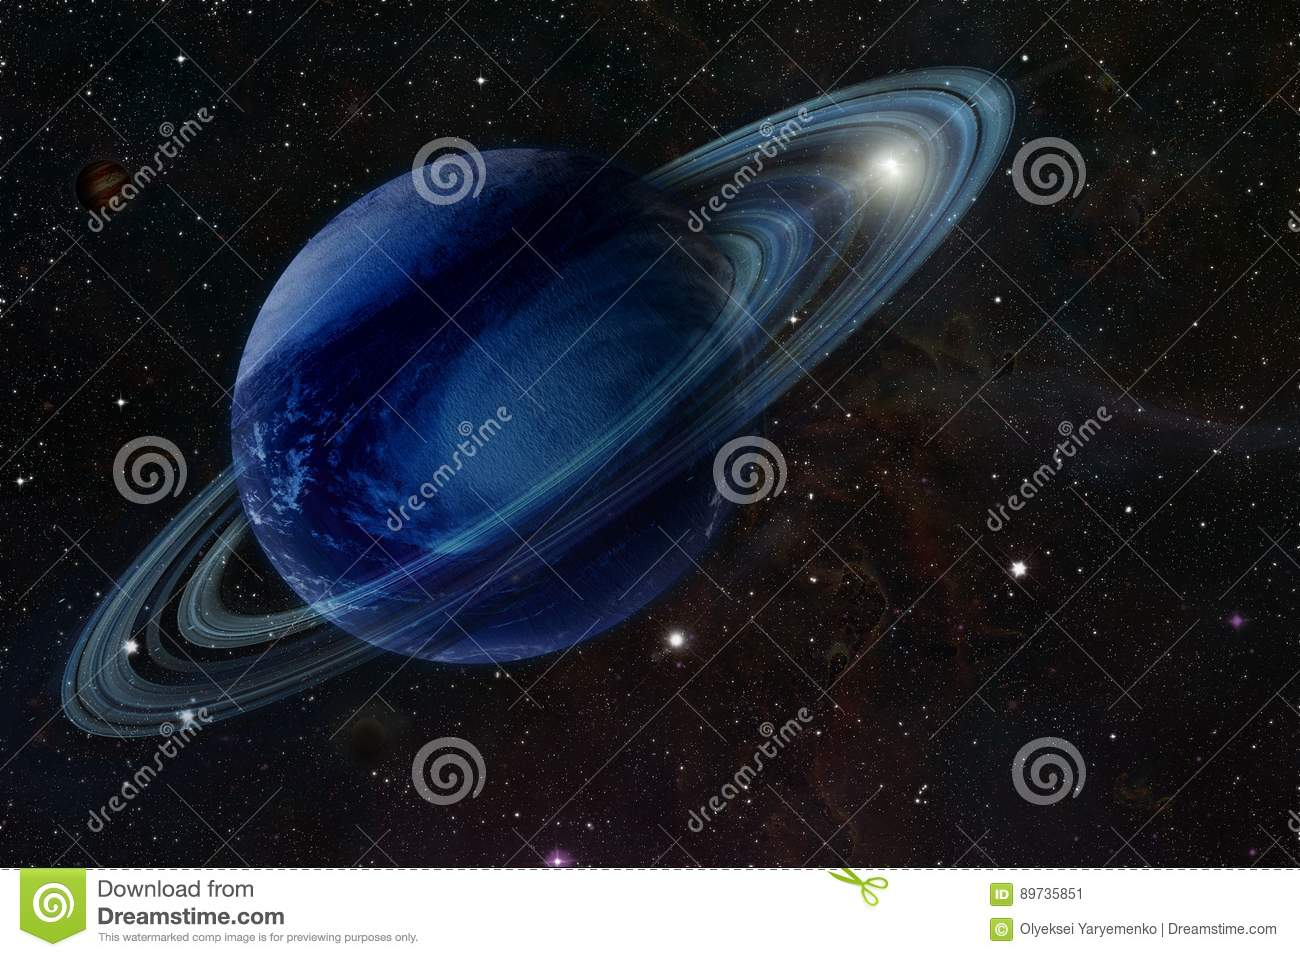 The gas giant in space